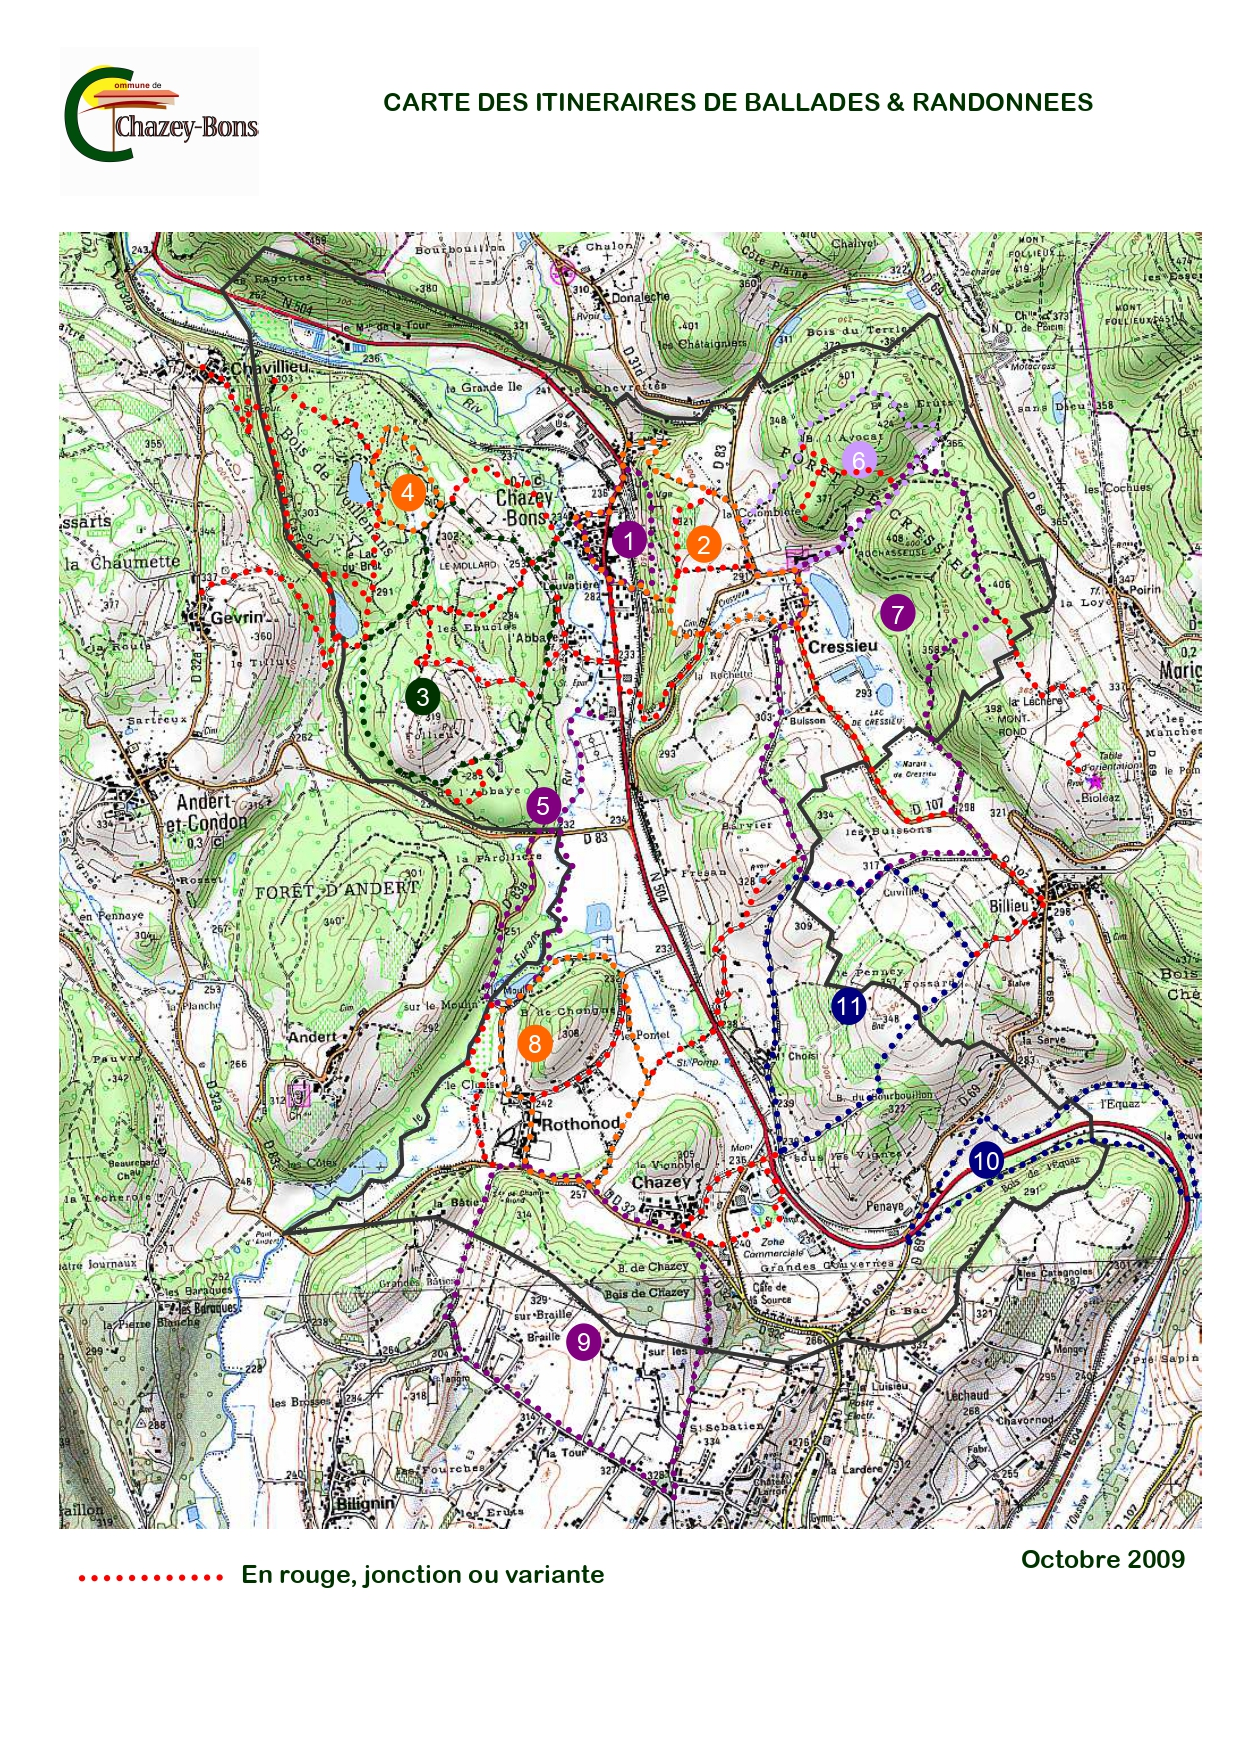 cb_carte_itineraires_randonnees_oct2009_page-0001